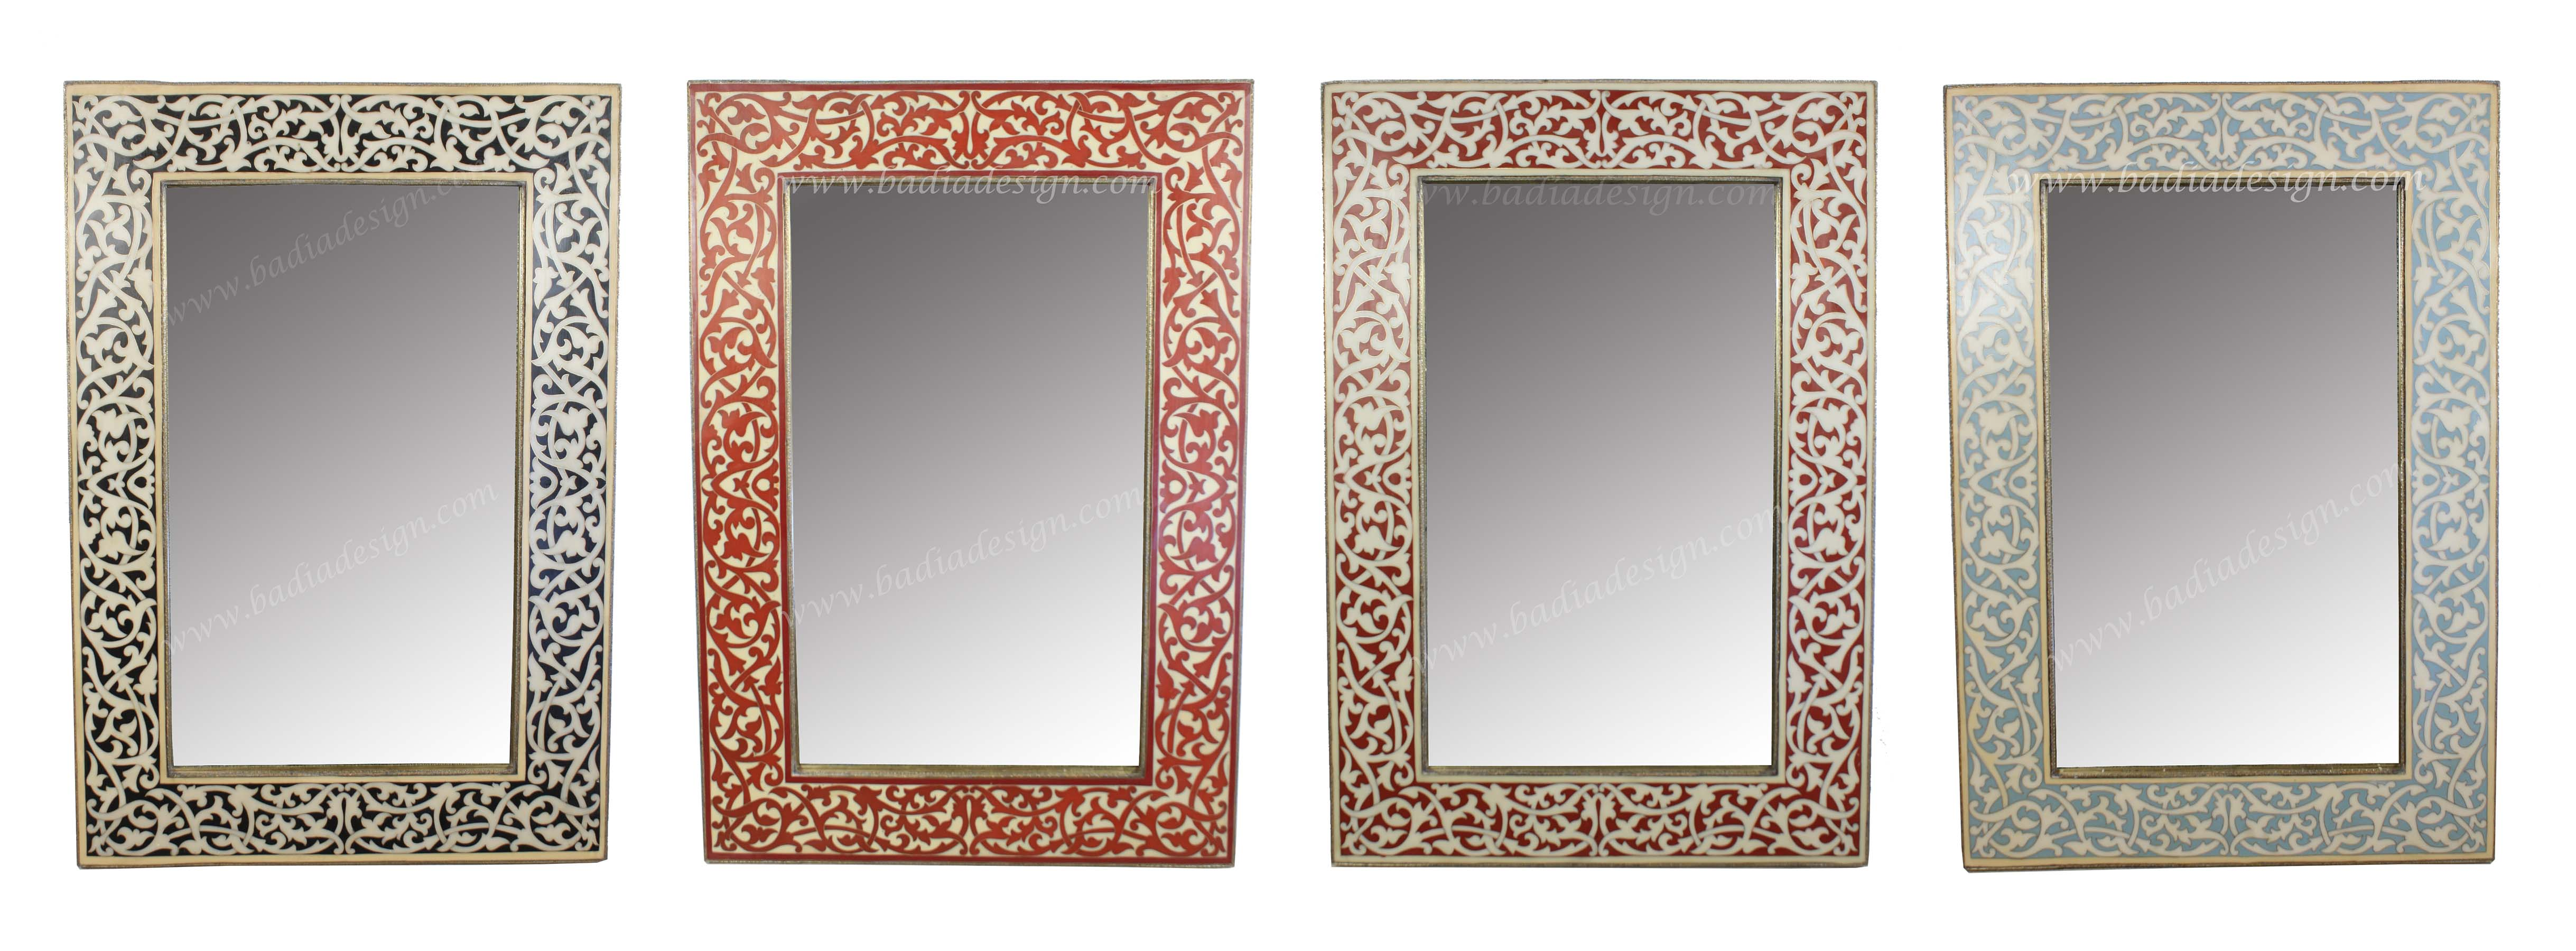 moroccan-camel-bone-mirror-los-angeles-m-mb068.jpg